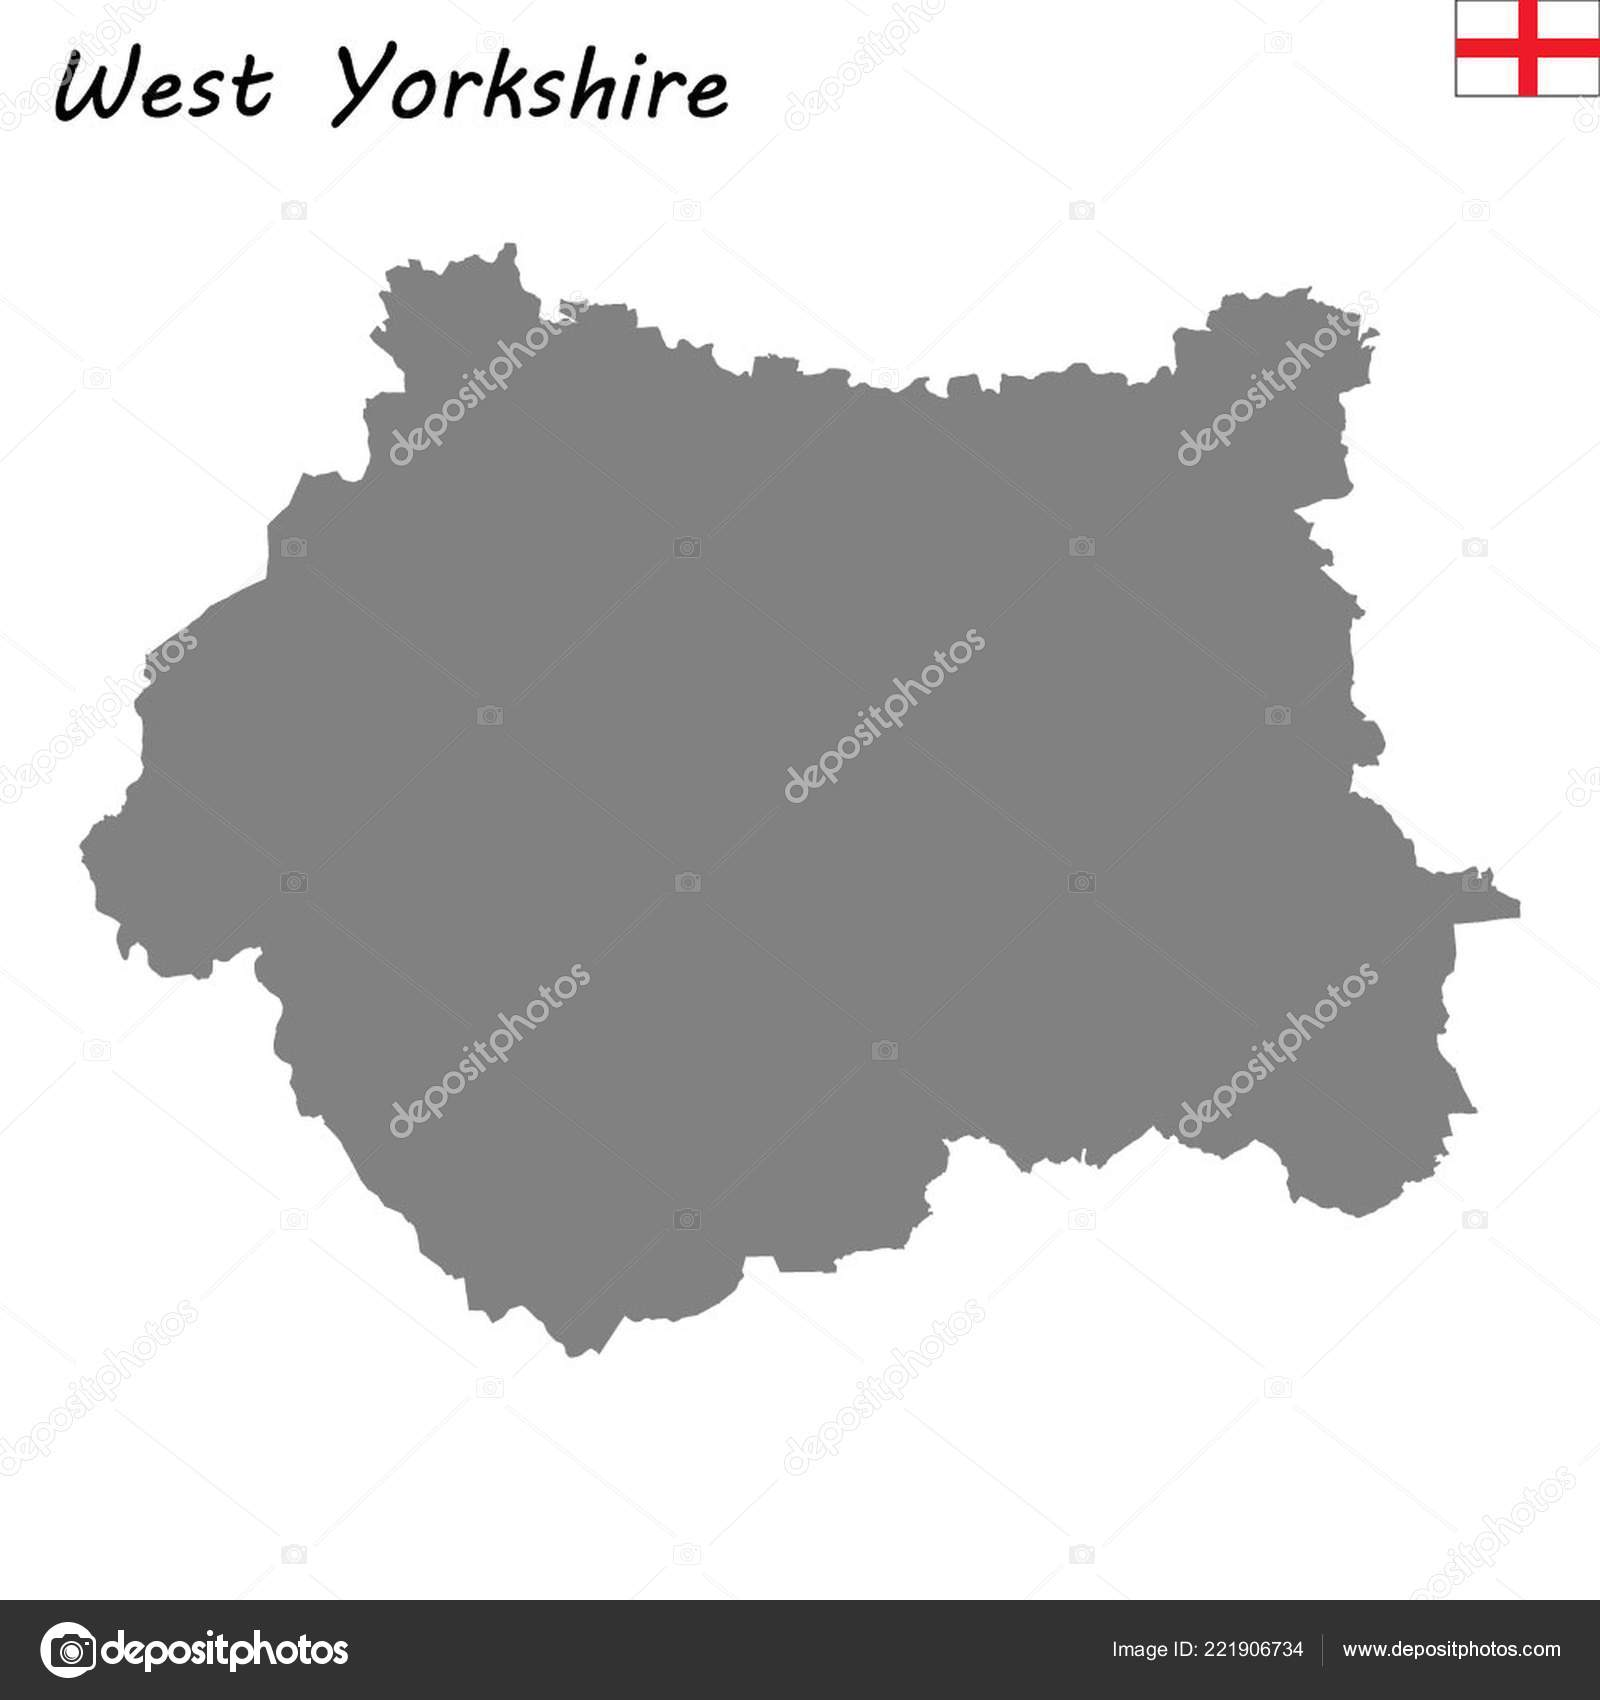 Map Of Counties In England.High Quality Map Ceremonial County England West Yorkshire Stock